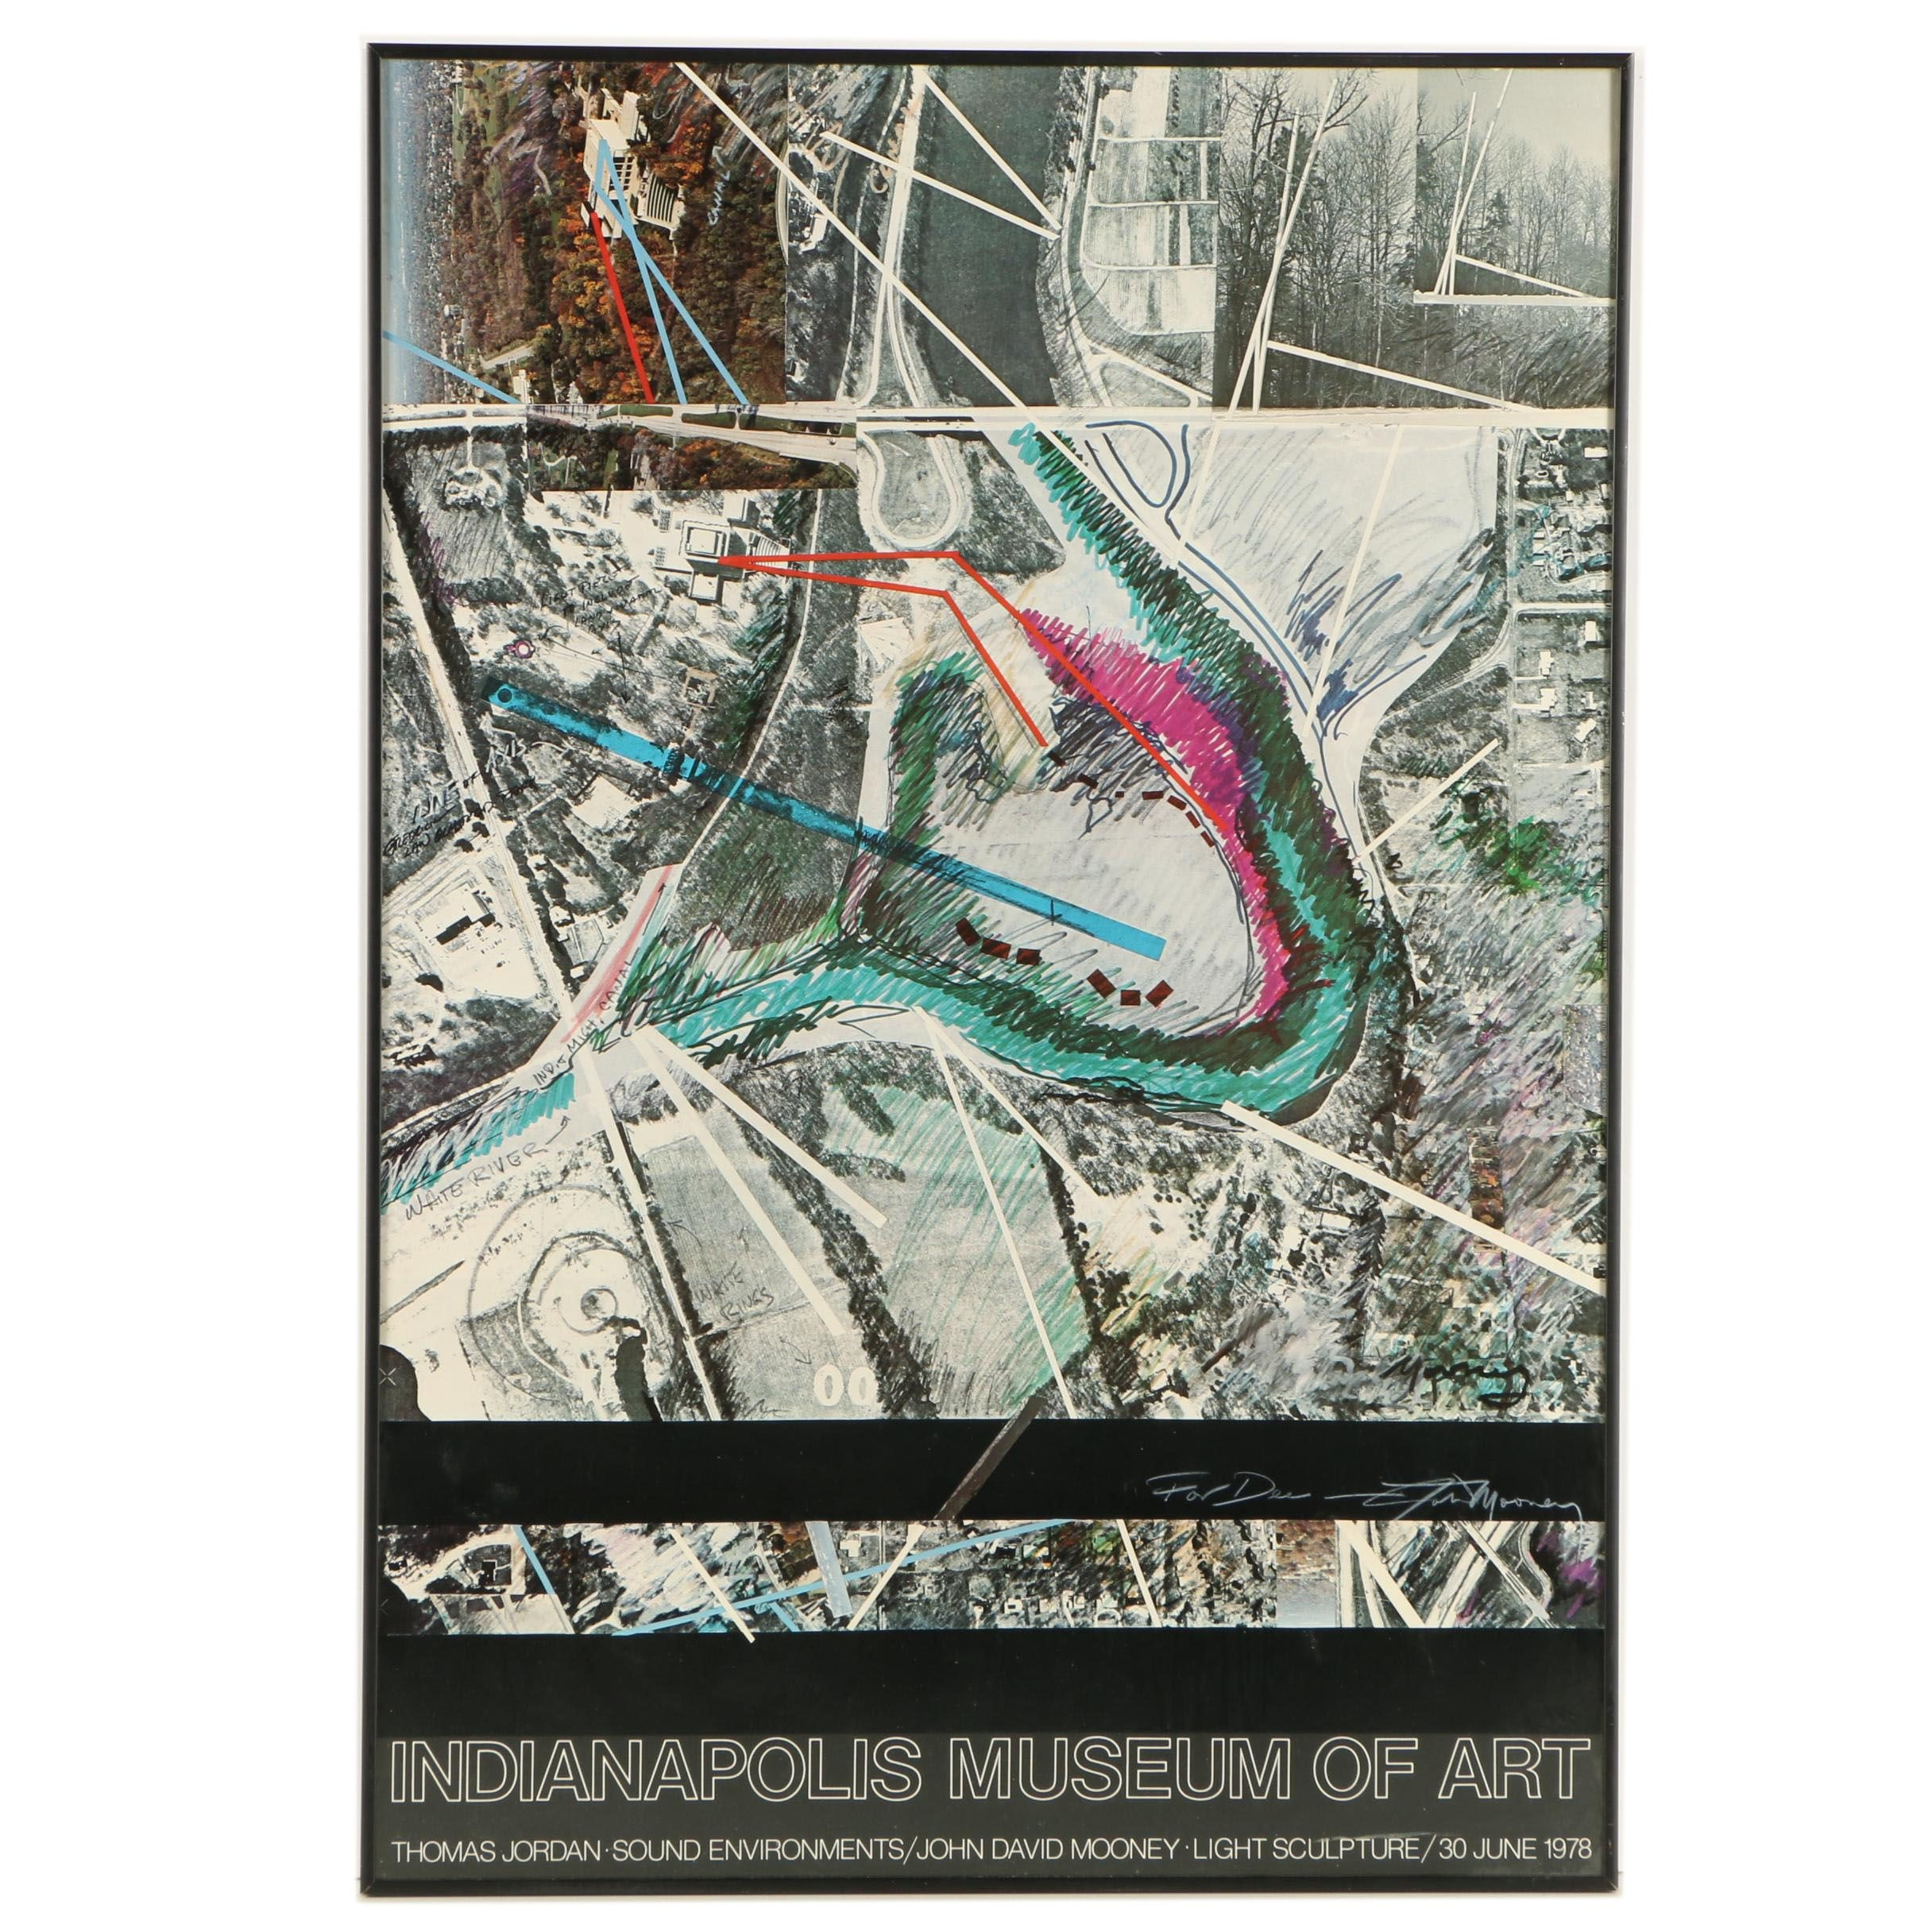 John David Mooney Signed Indianapolis Museum of Art Exhibition Poster